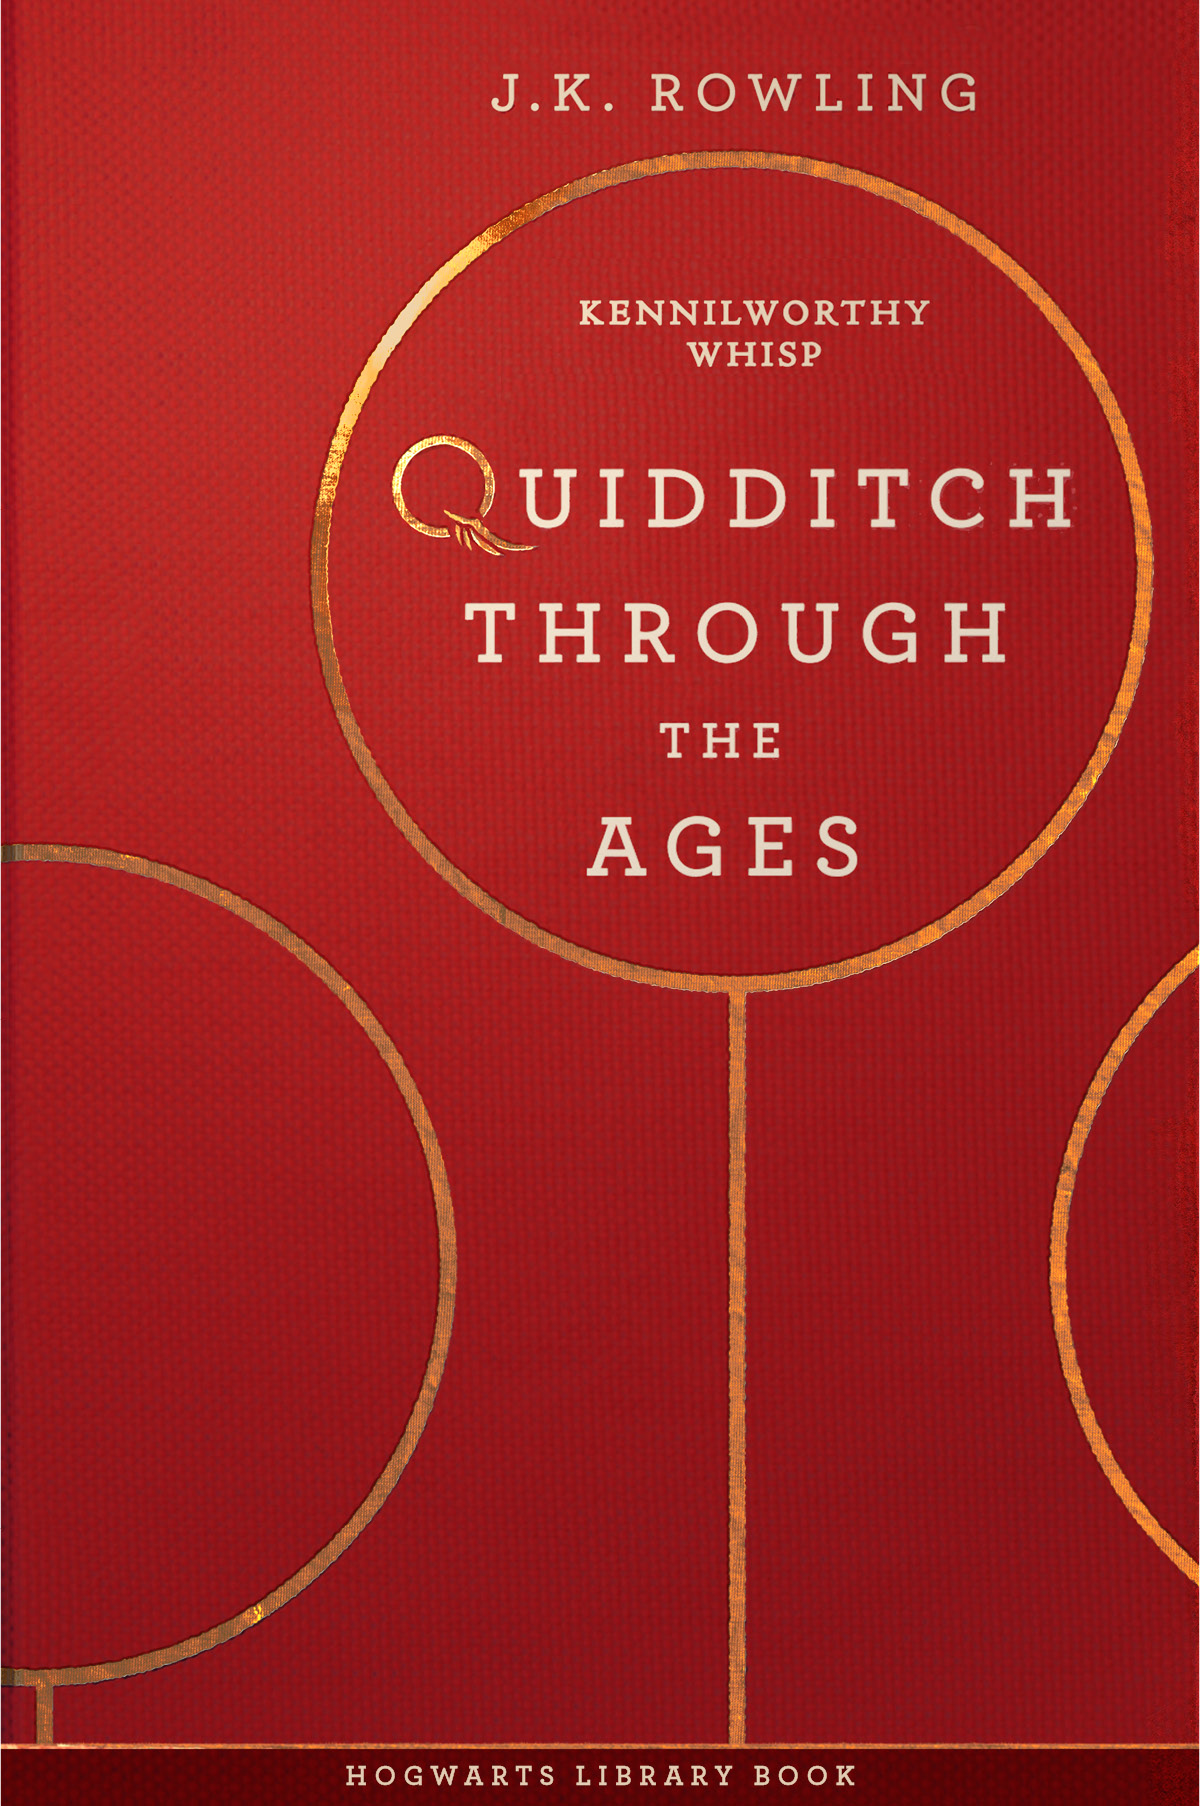 Дж. К. Роулинг Quidditch Through the Ages stories of wizards and witches